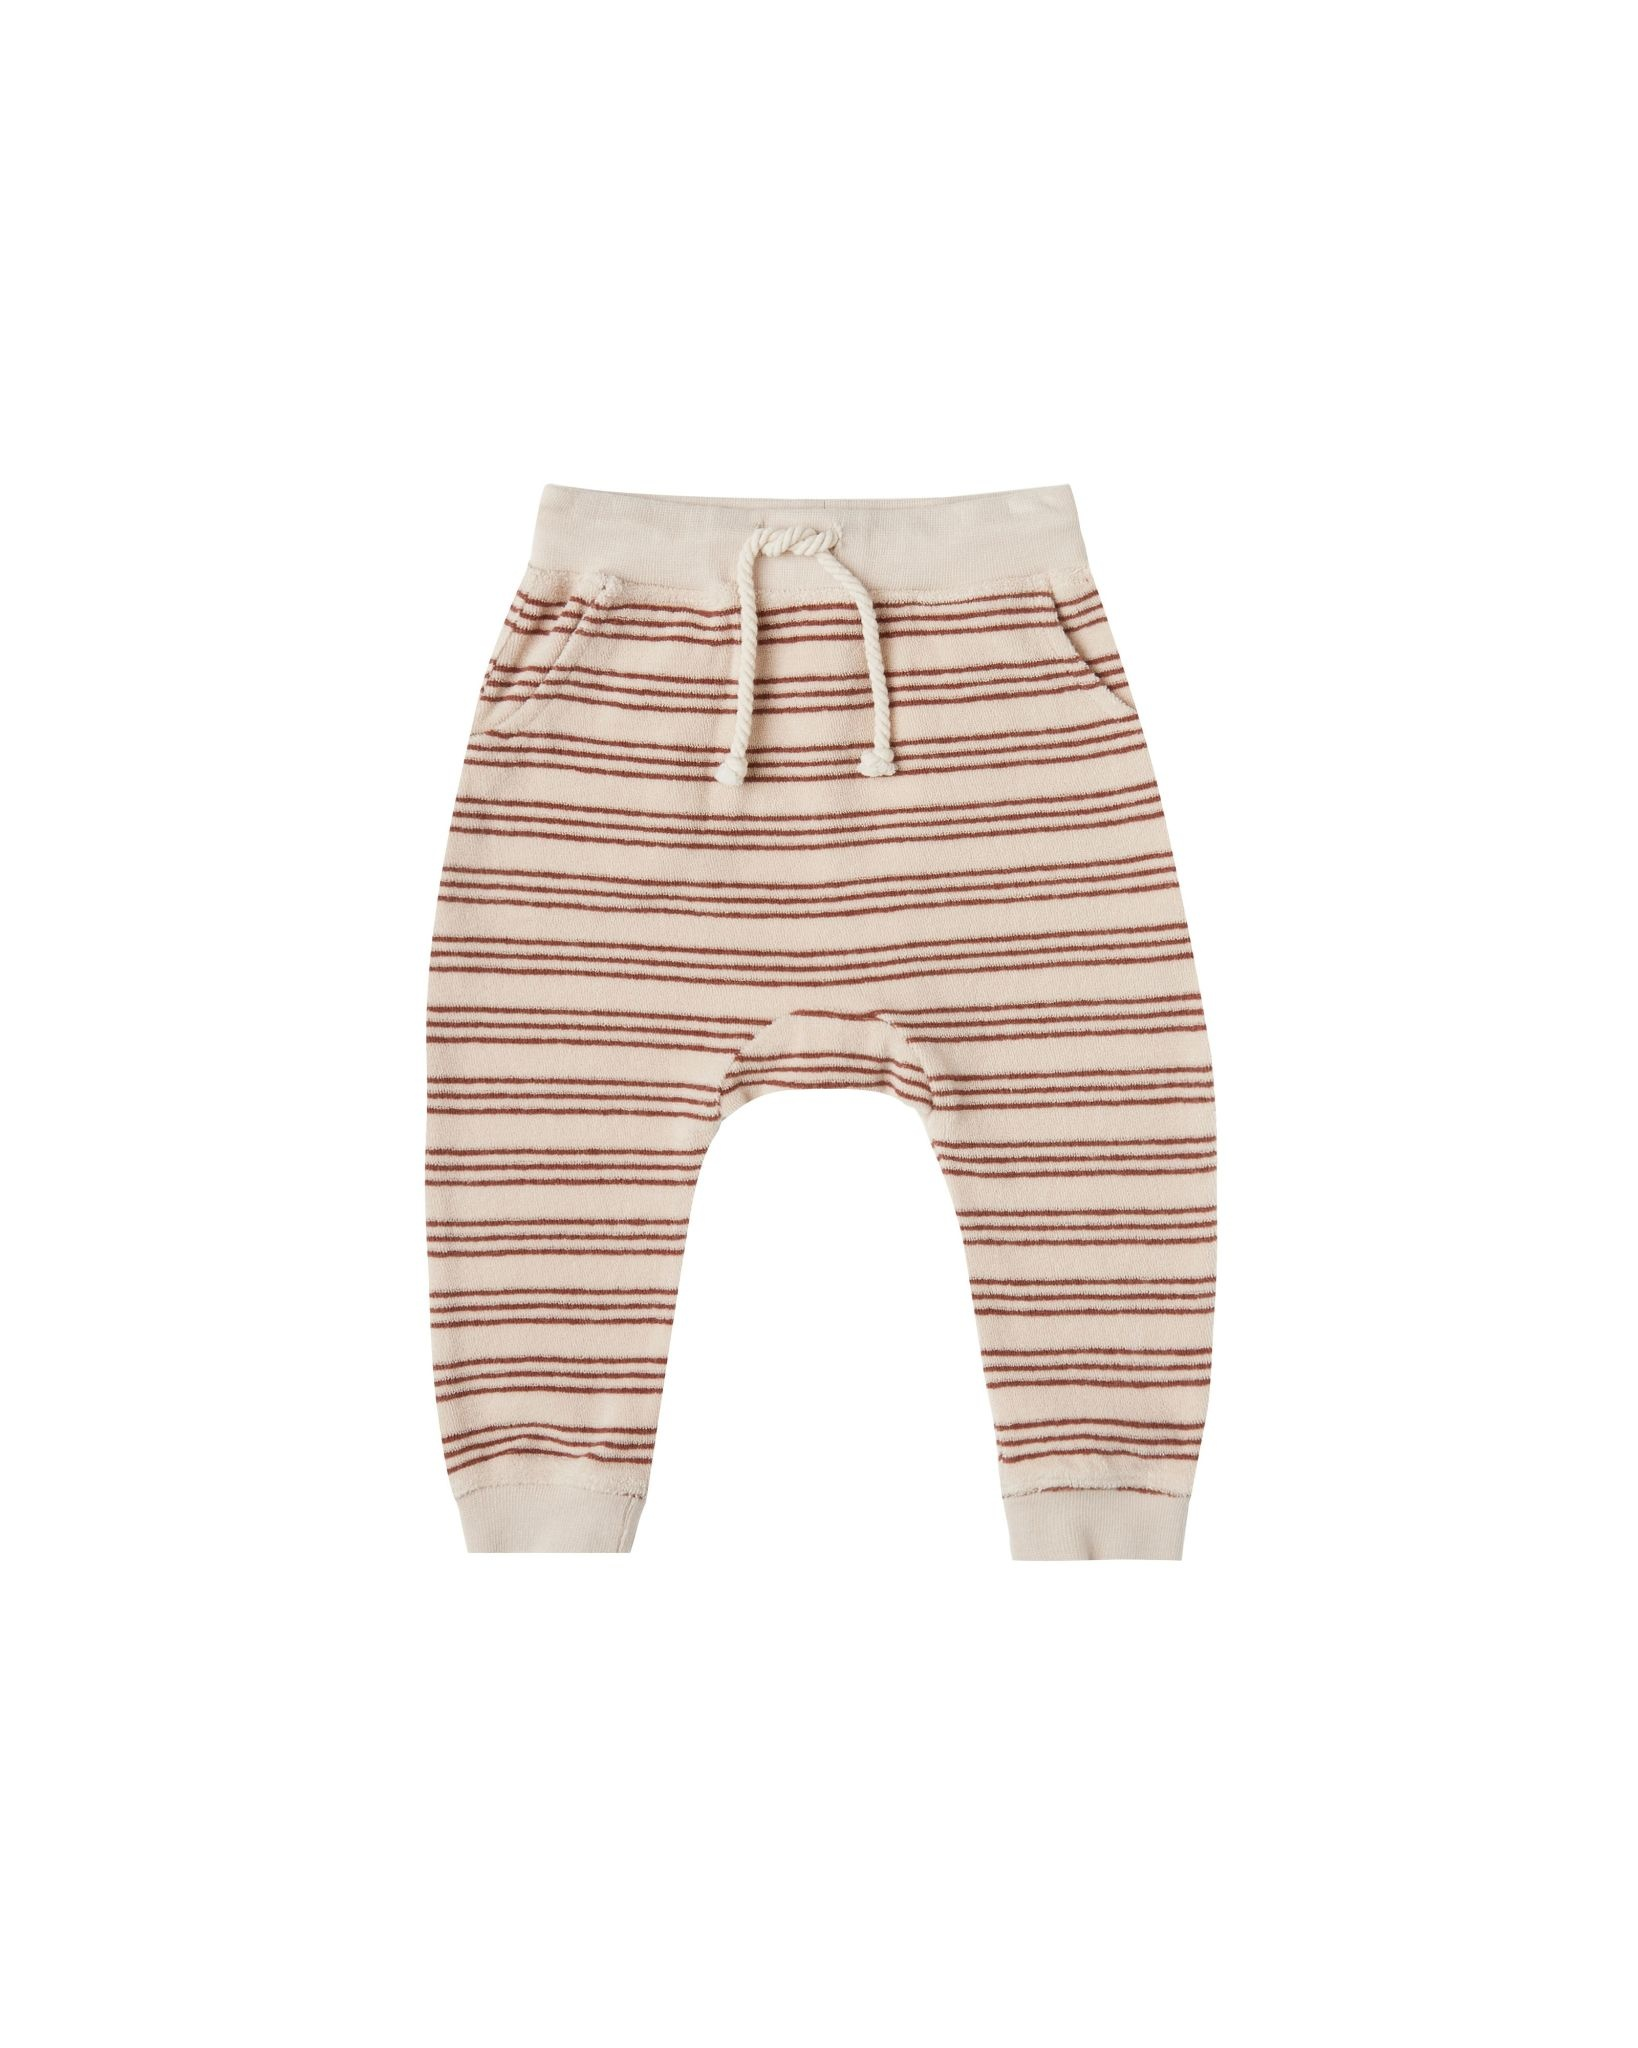 Rylee + Cru Rylee + Cru | Terry Sweatpant Striped